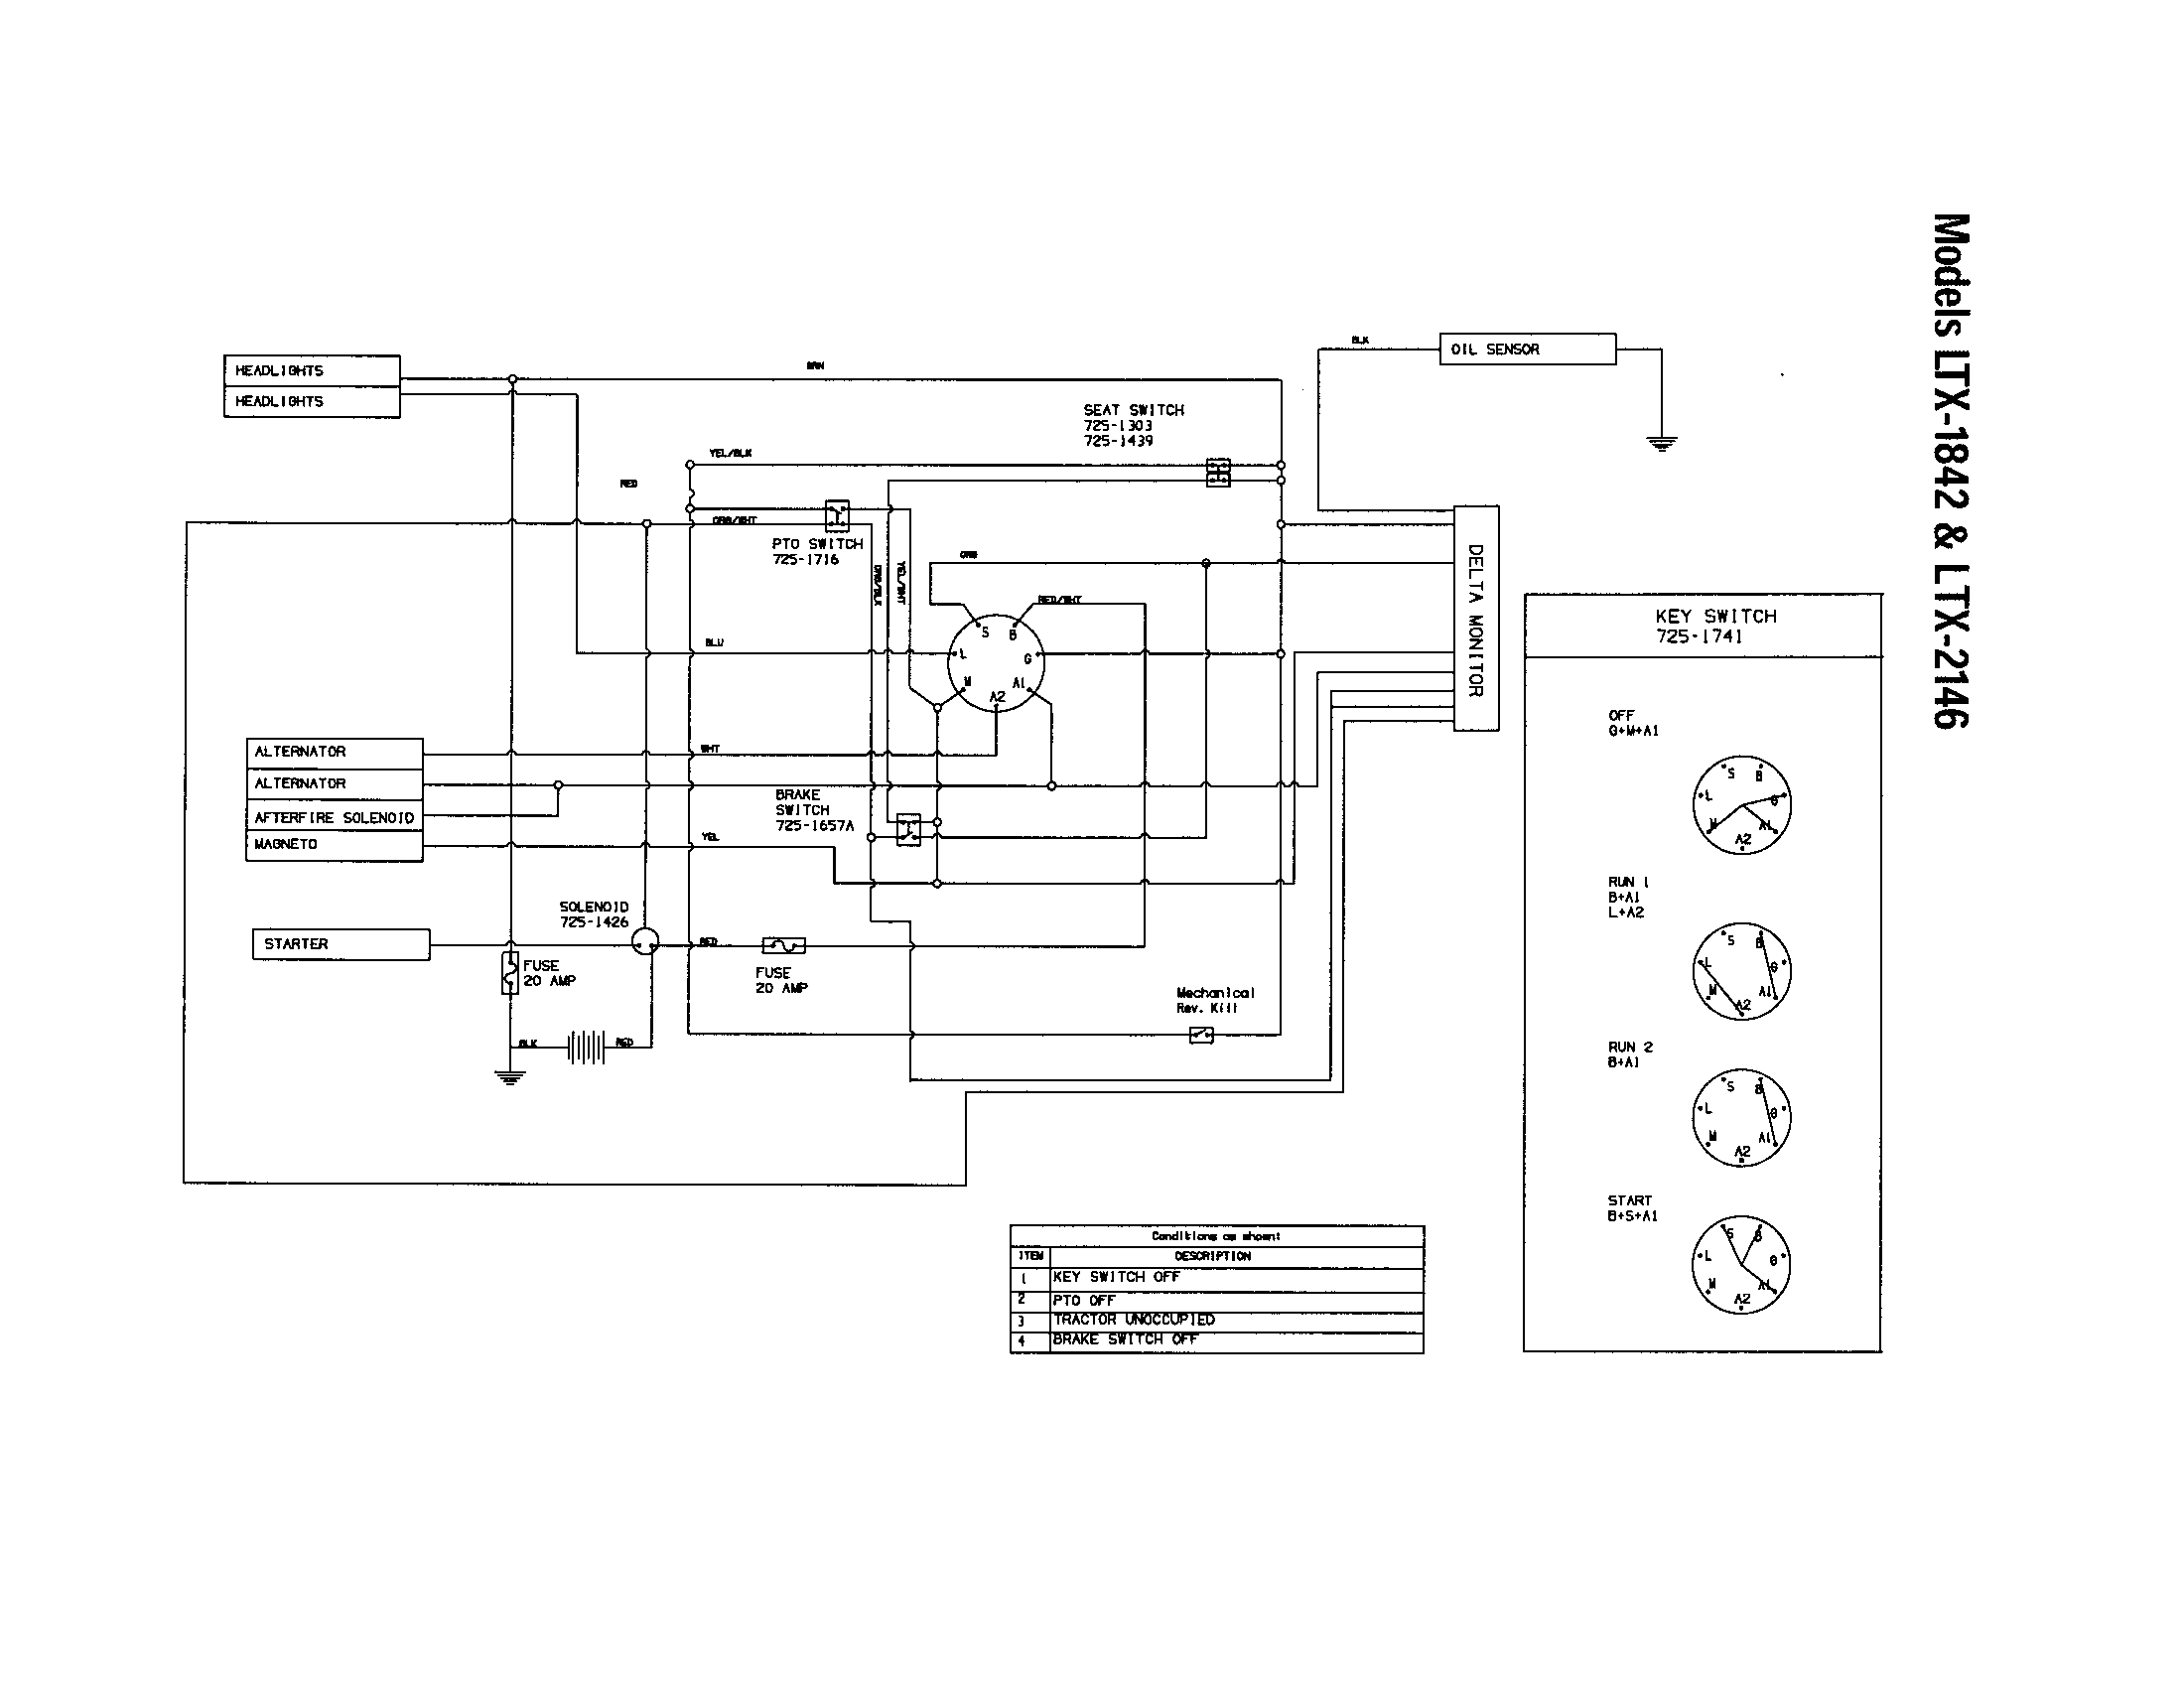 5f6fdf170ac50150de0653e8e97fb173 wiring diagram diagram & parts list for model 13ap609g063 troybilt modem wiring diagram at soozxer.org